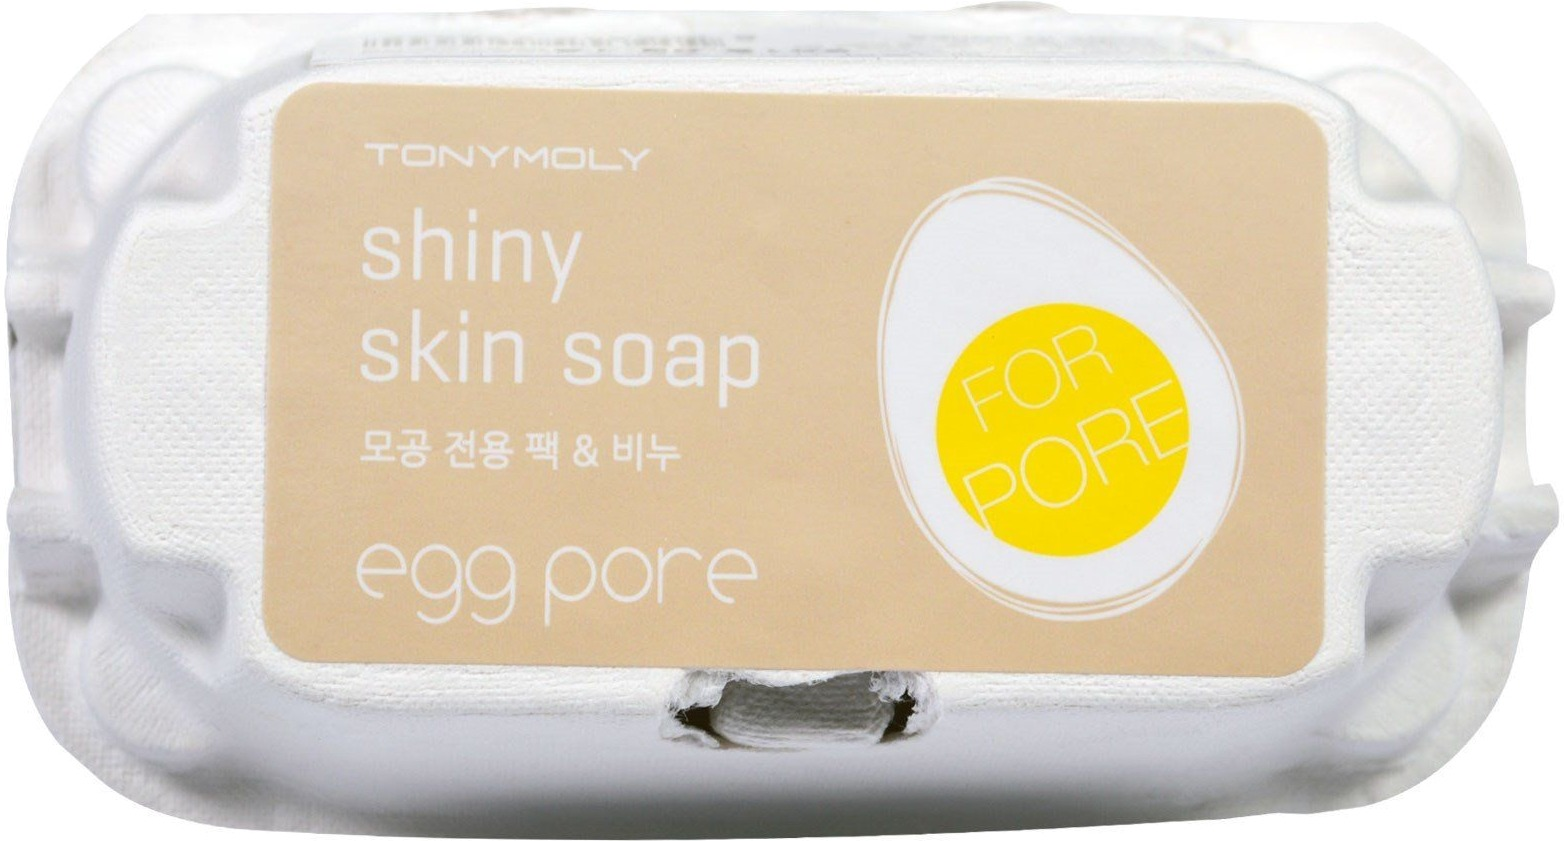 Tony Moly Egg Pore Shiny Skin Soap